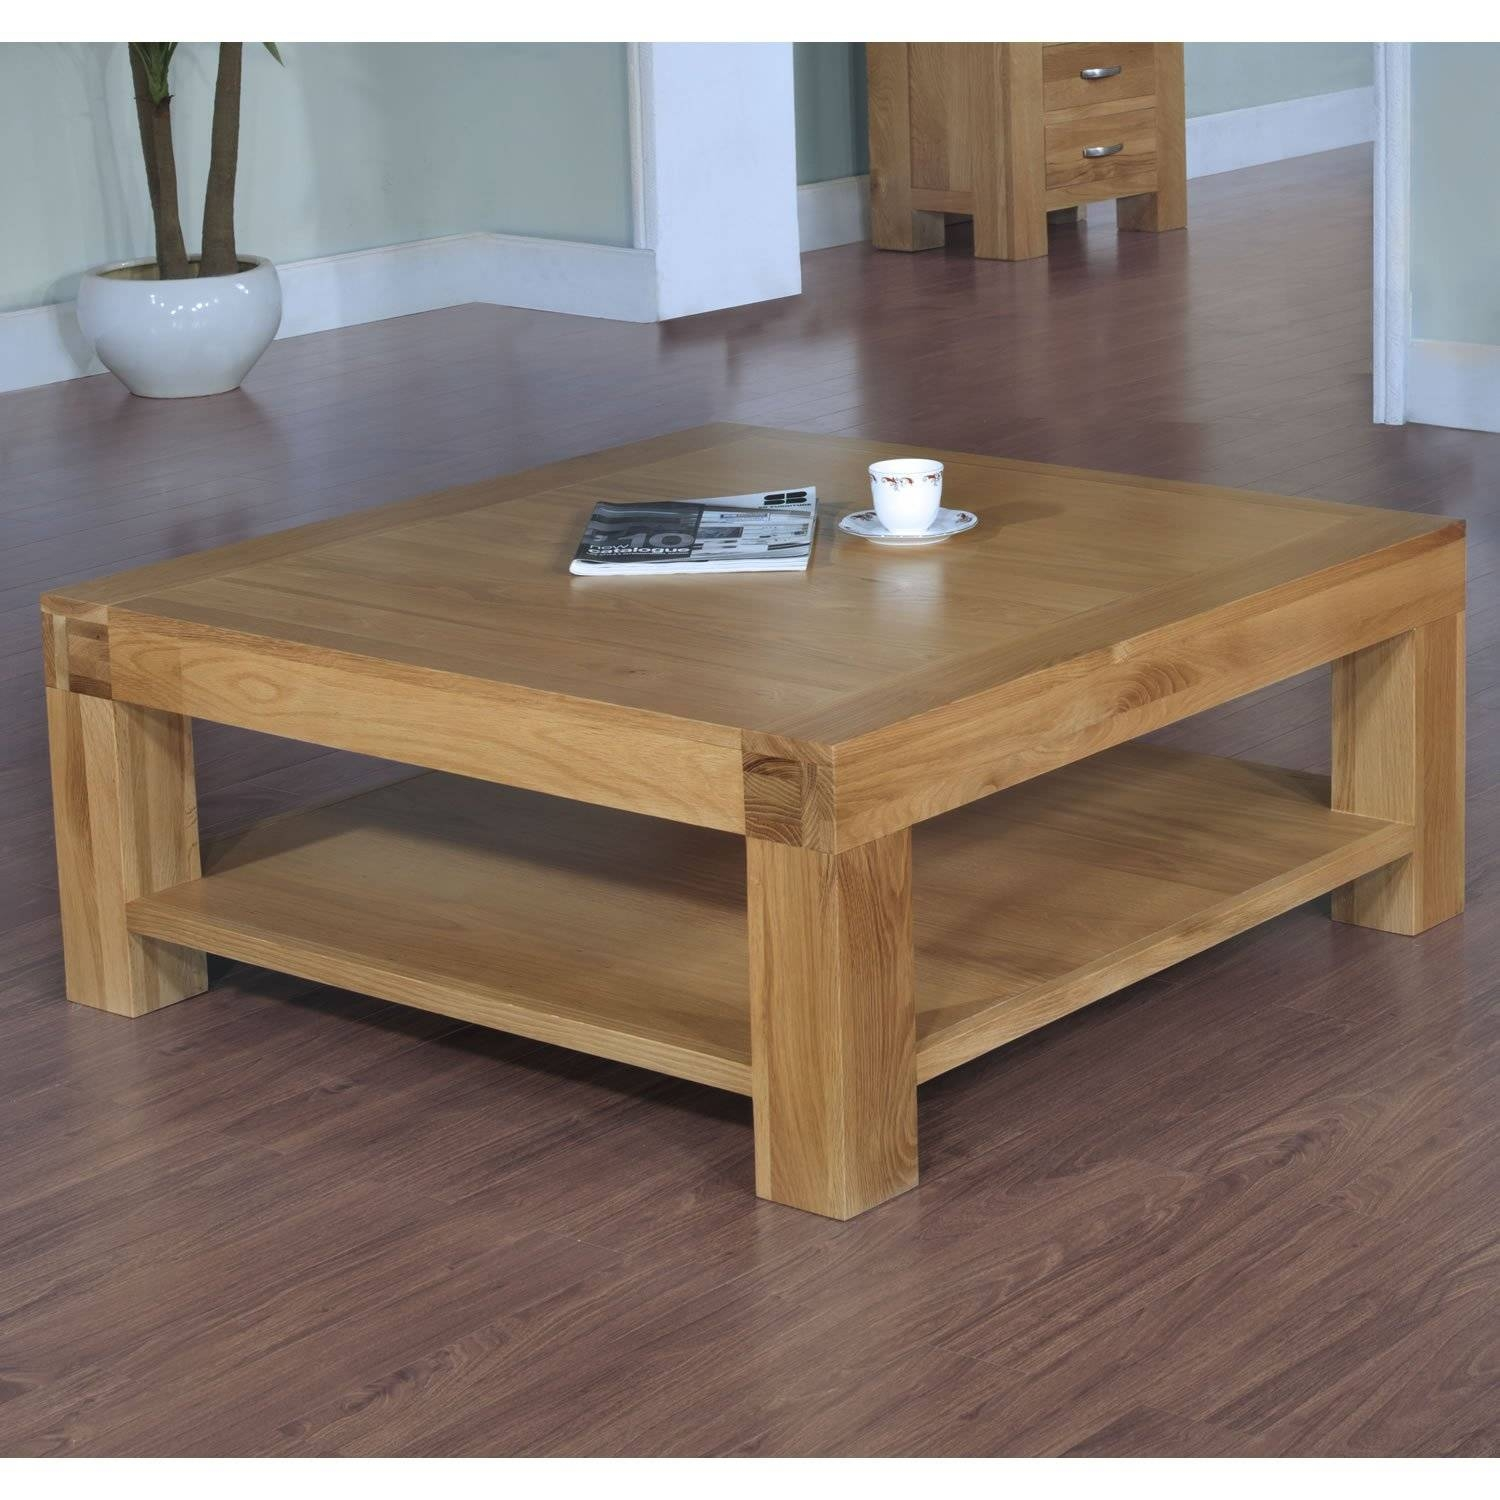 Orly Oak Square Coffee Table With Drawers | Coffee Tables Decoration Regarding Oak Coffee Table Sets (View 26 of 30)